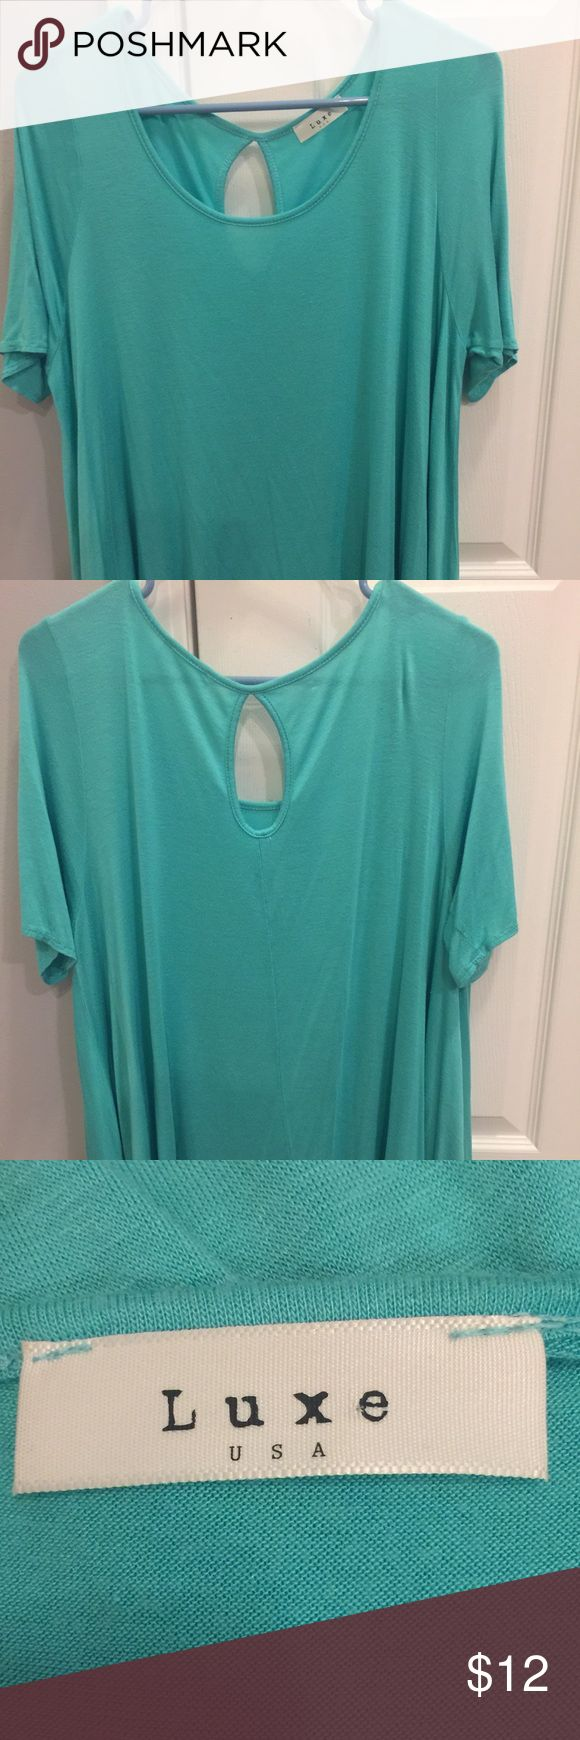 "EUC!! Mint green ""LUXE"" swing top! EUC!! This top is sooo comfortable and soft!! It is a ""swing"" style, which means it is extra roomy towards the bottom.  Gorgeous mint green color! Luxe Essentials Apparel Tops Tees - Short Sleeve"